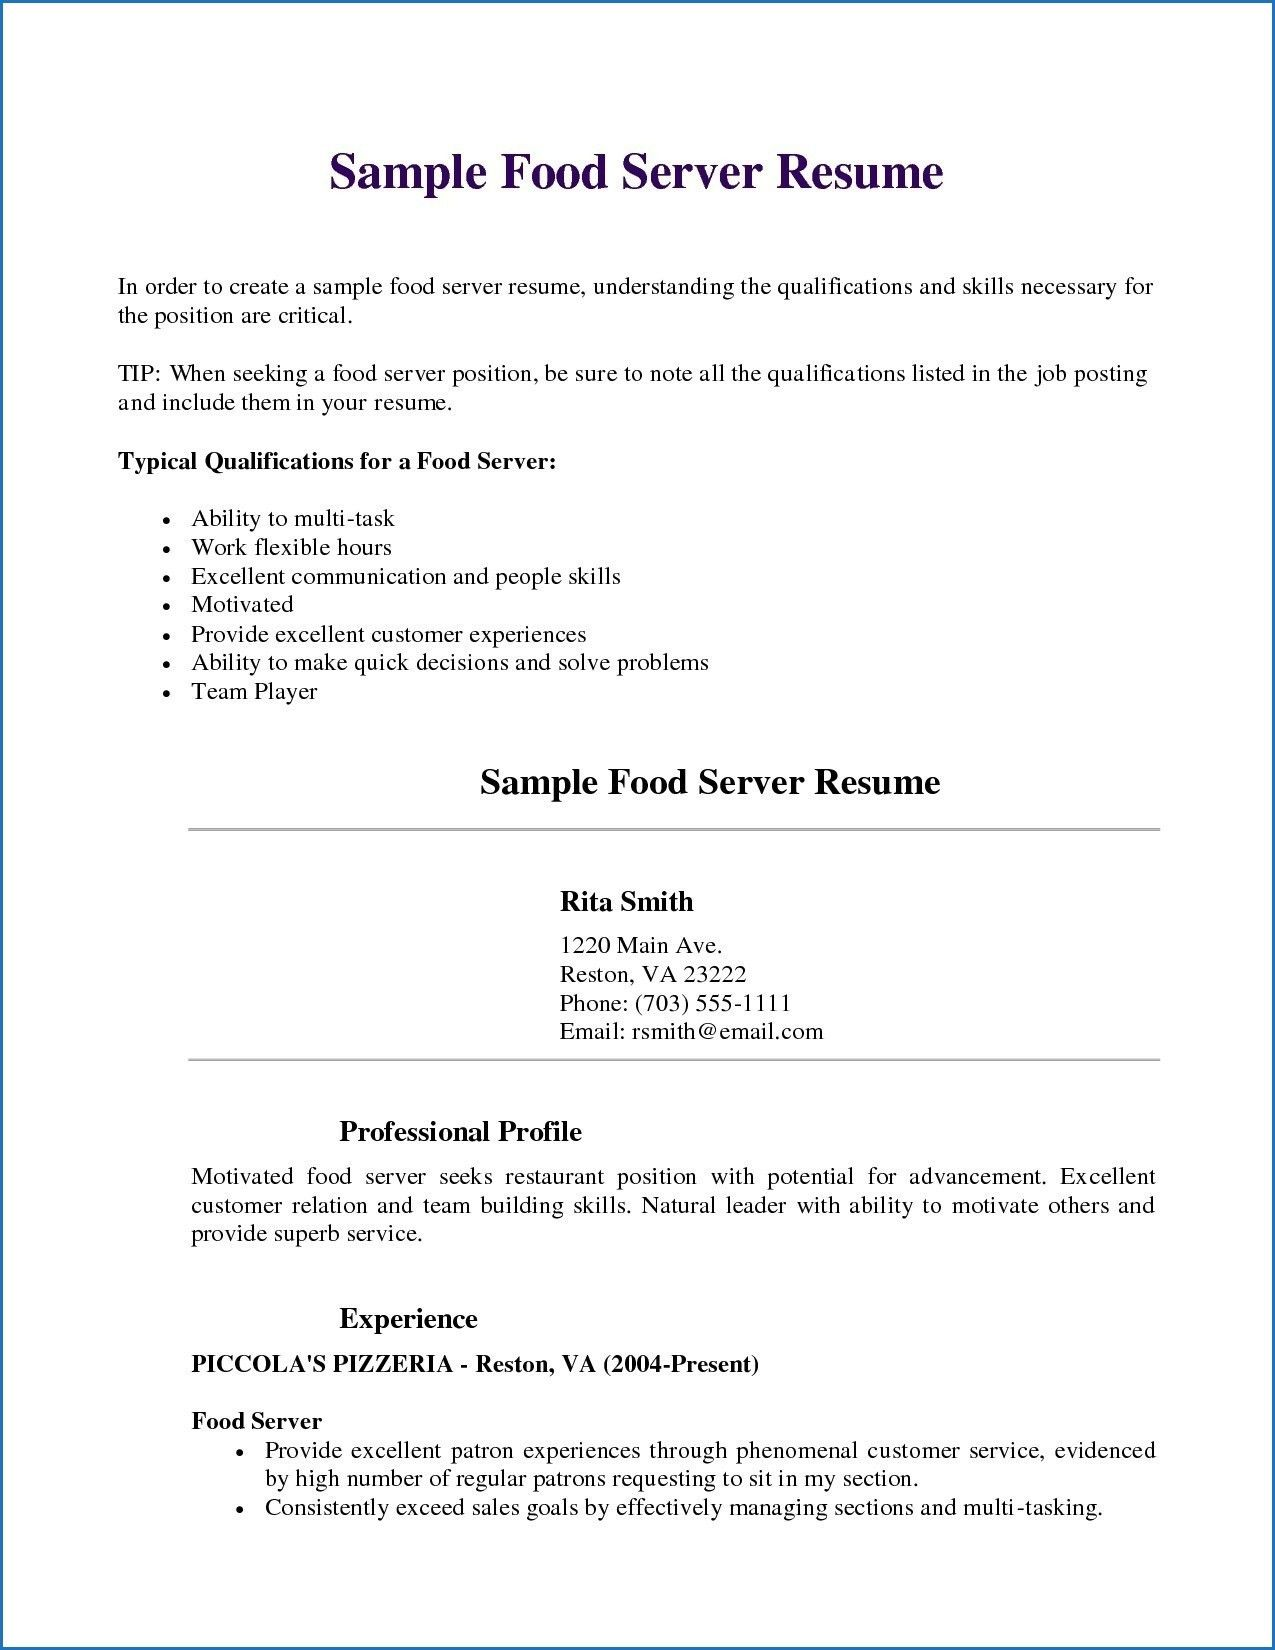 Objectives for A Resume Server, Template, Job